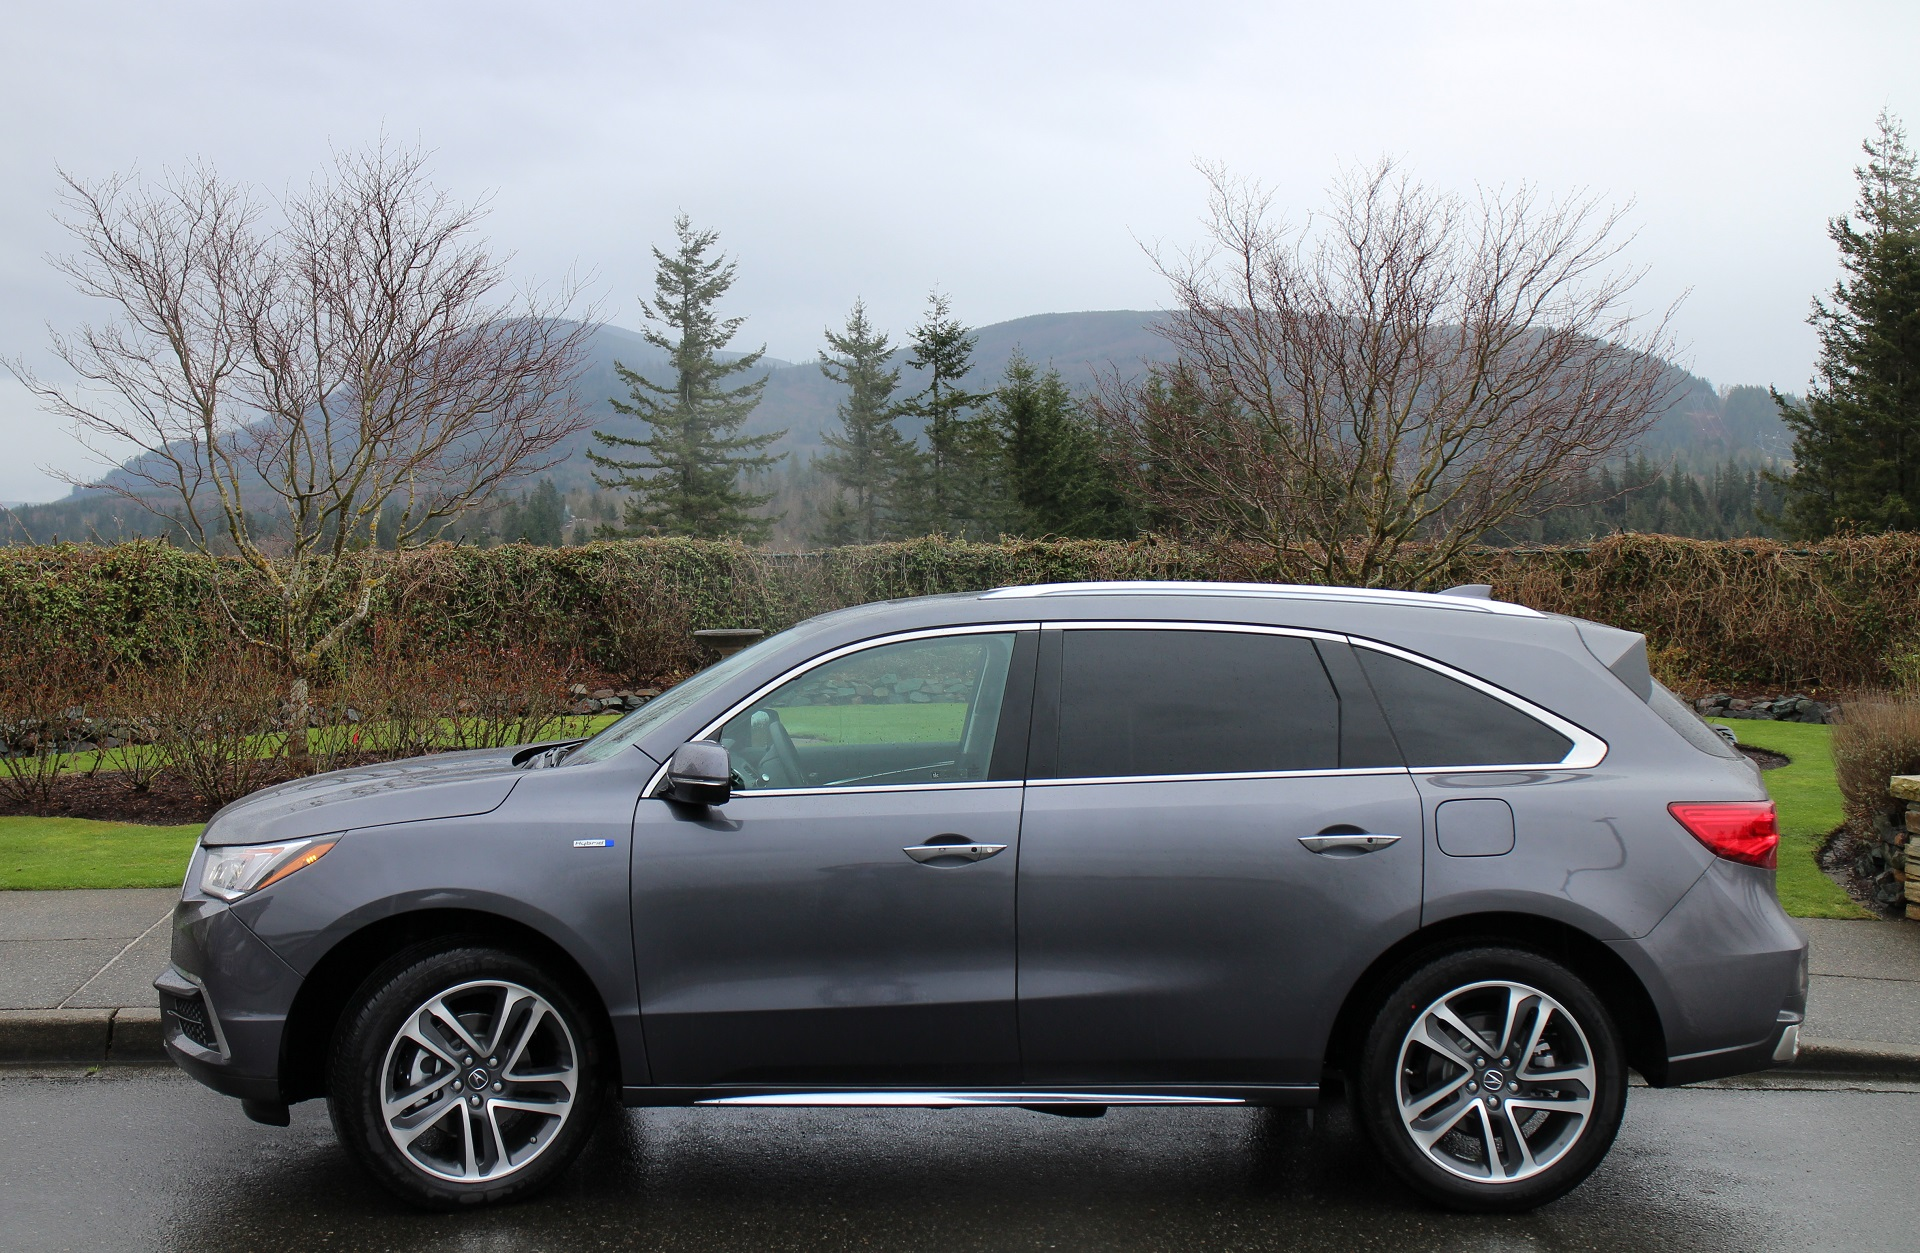 Used Luxury Cars Seattle >> 2017 Acura Mdx Sport Hybrid Sh Awd First Drive Review | Autos Post